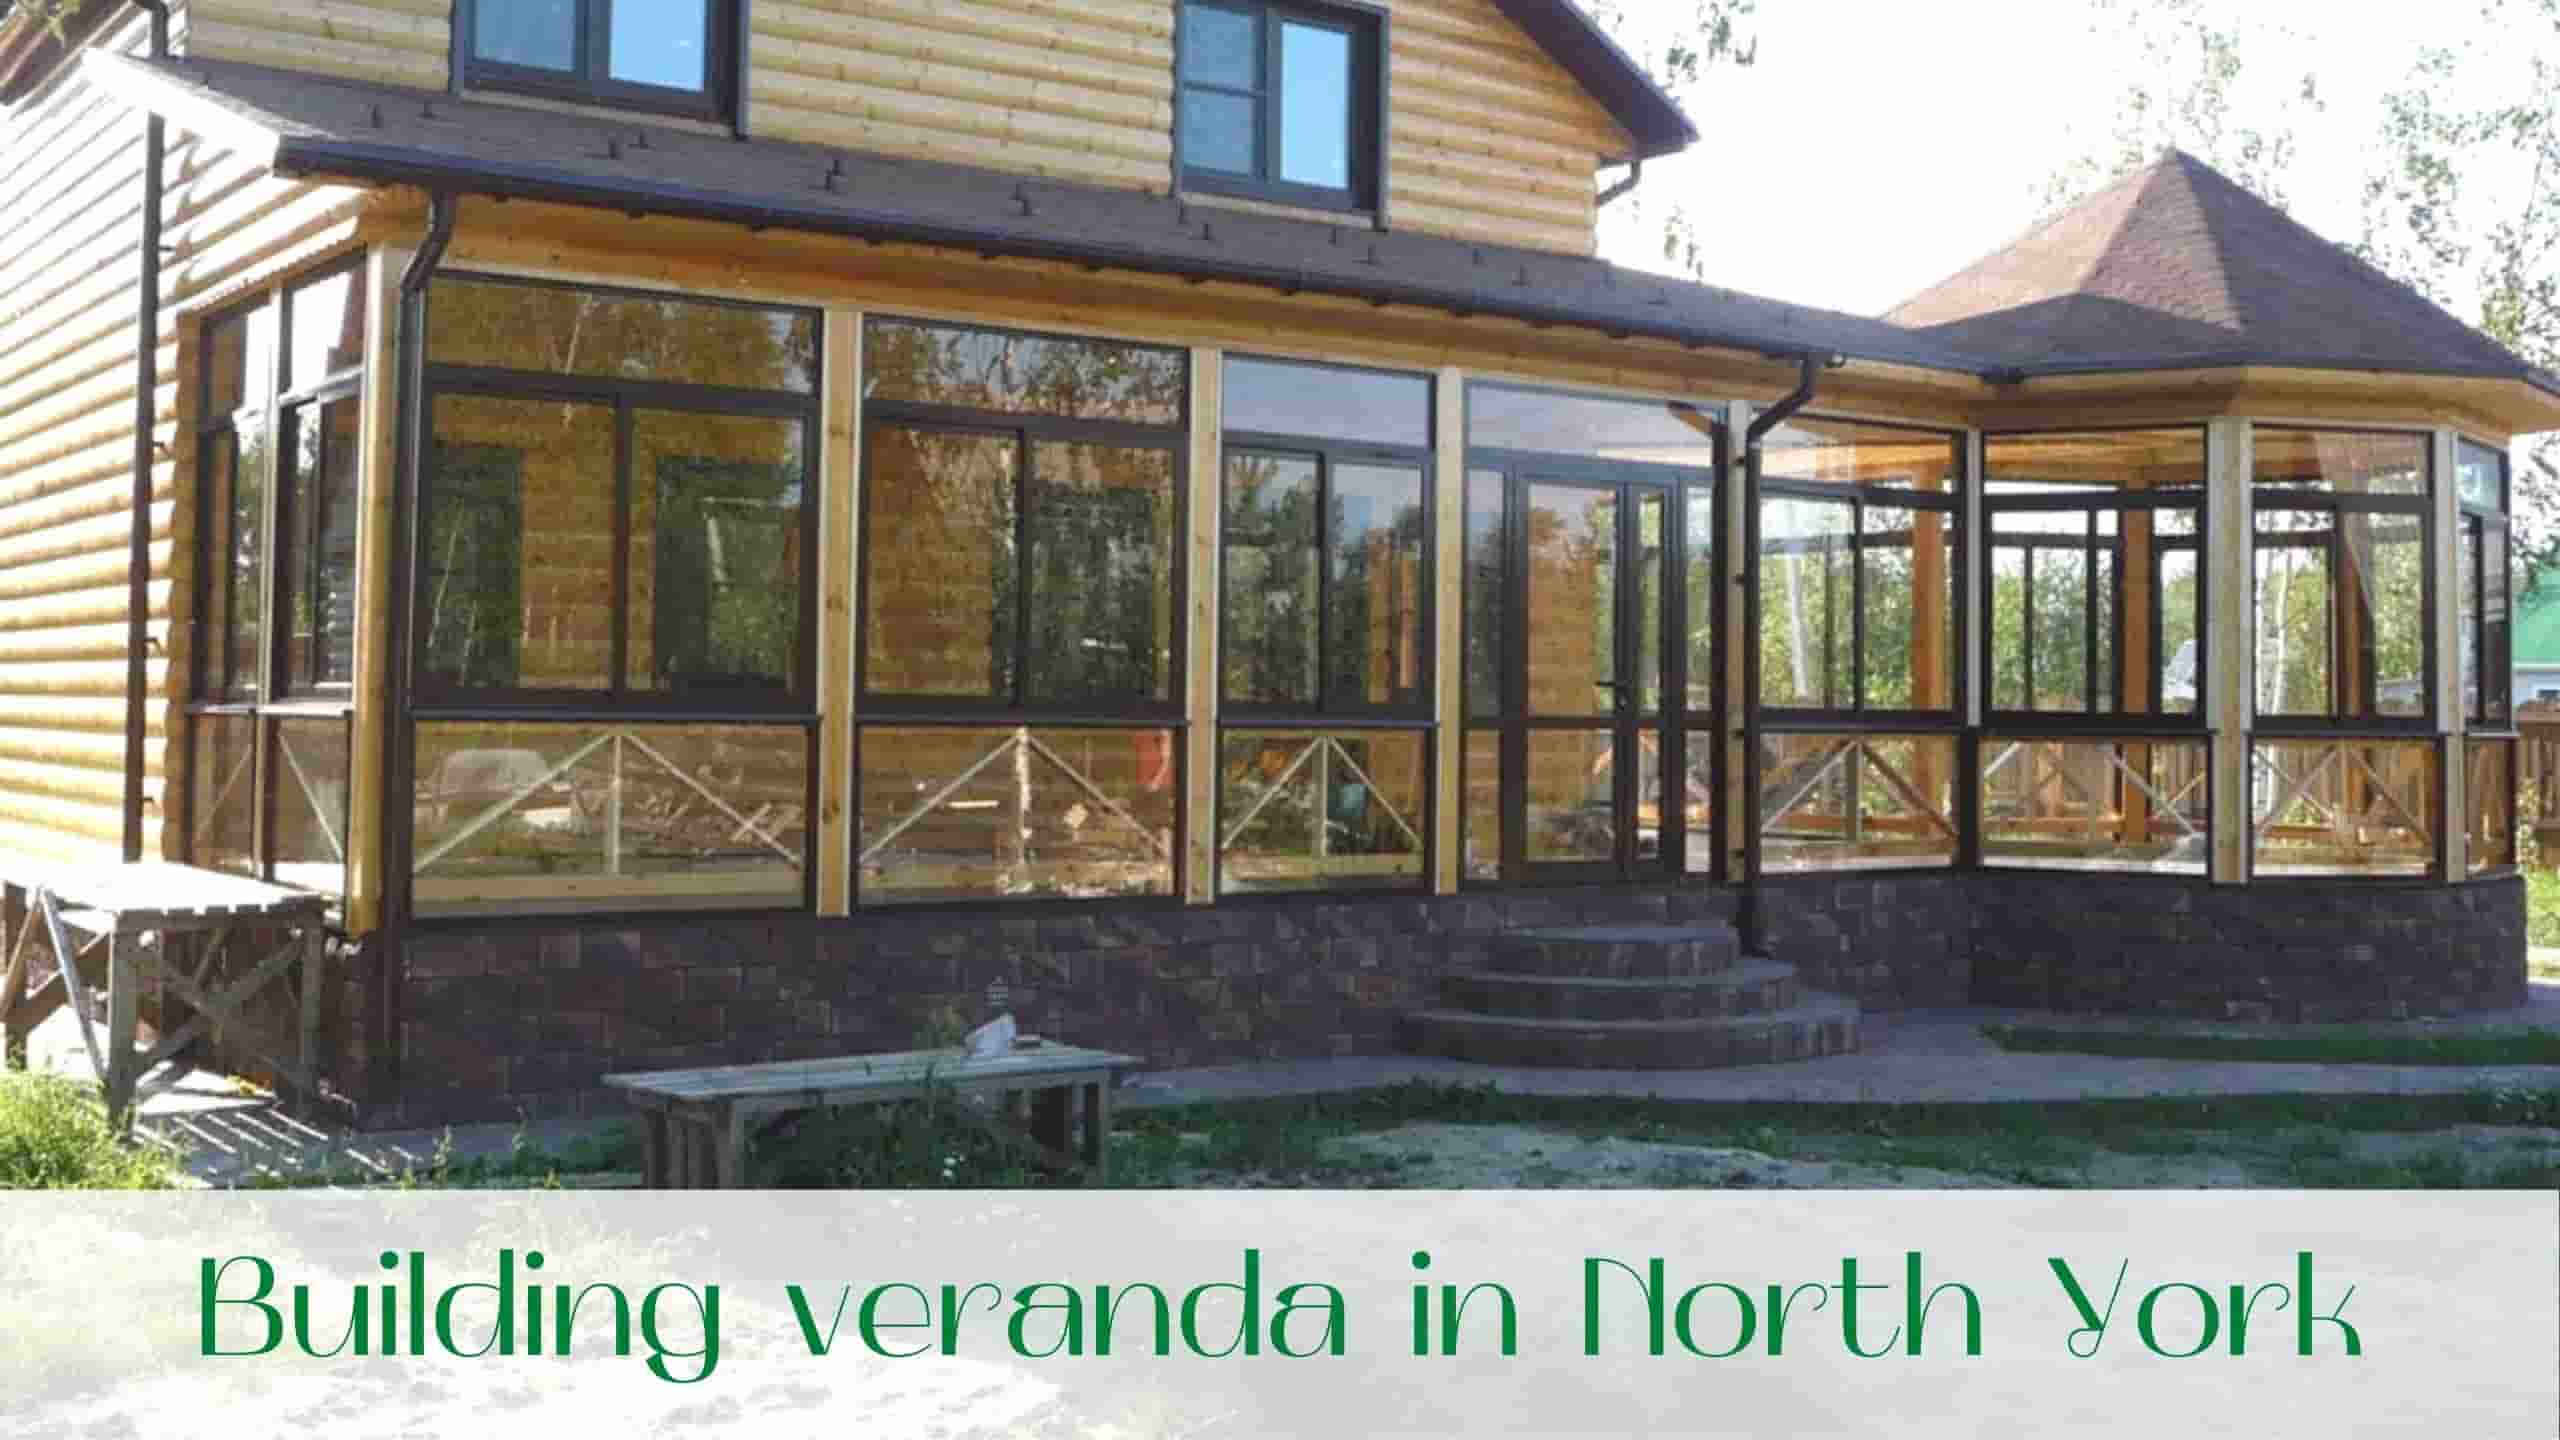 image-building-veranda-north-york